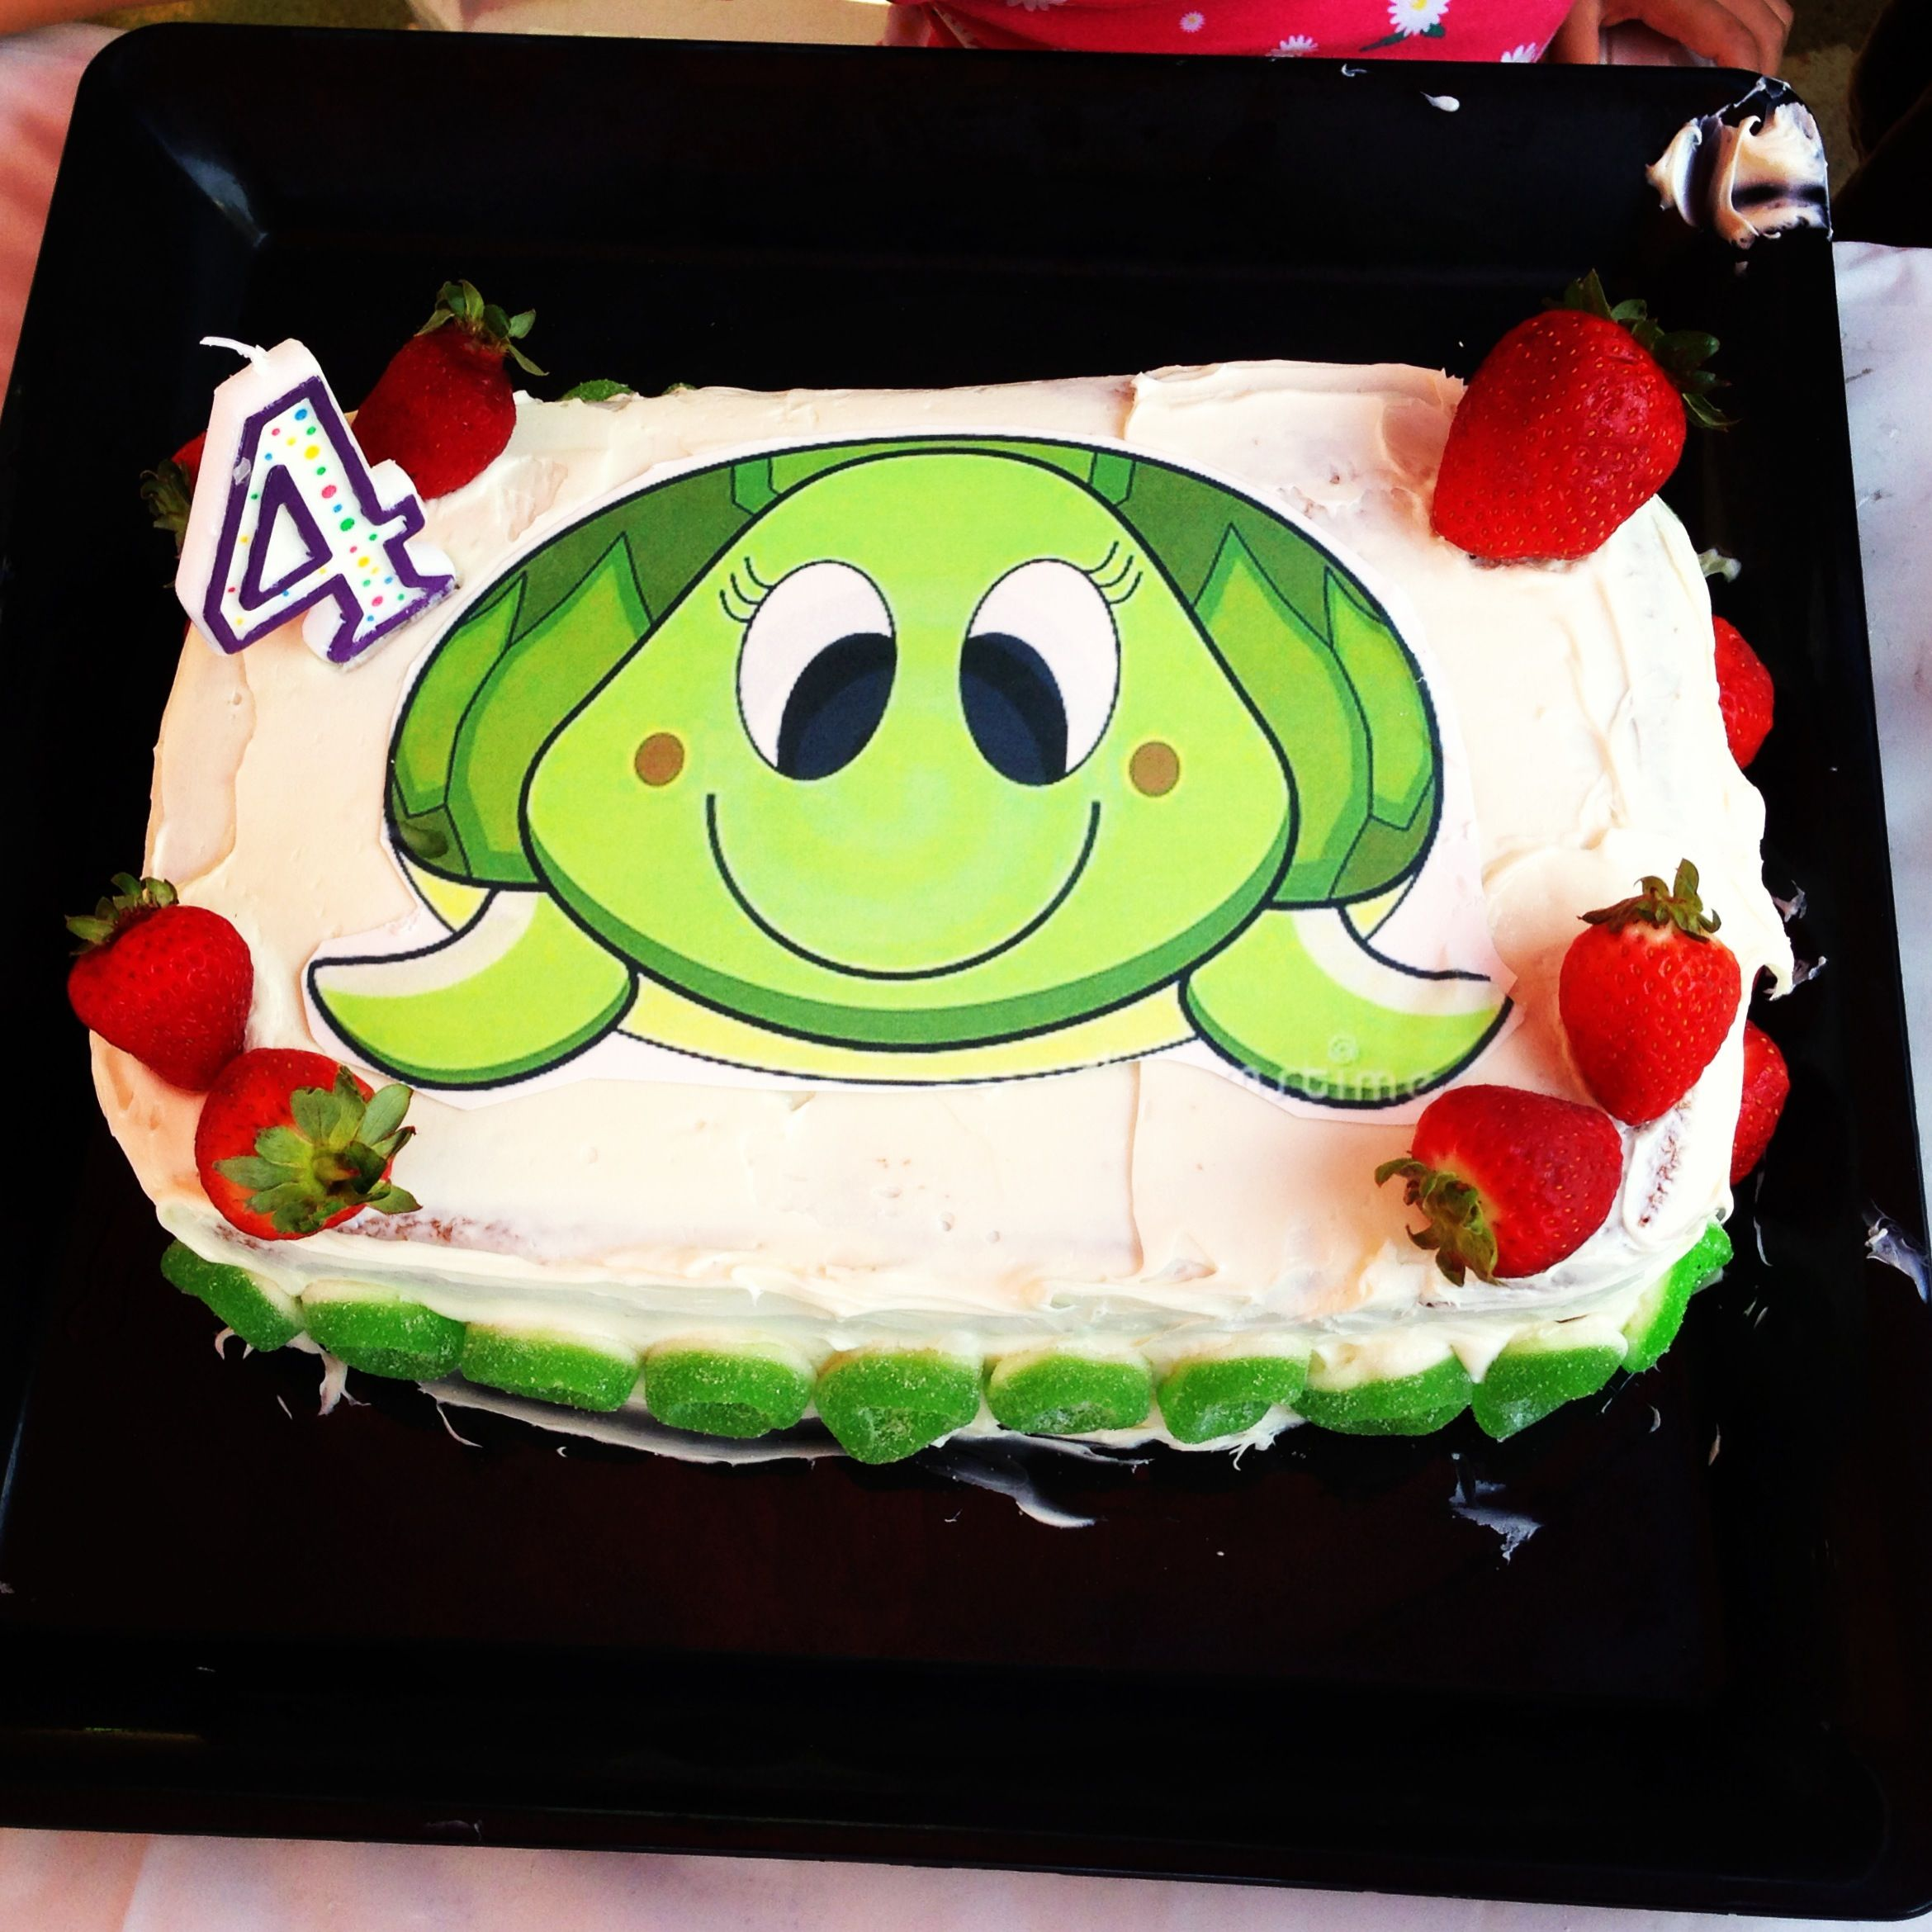 Homemade strawberry cake with edible picture turtle